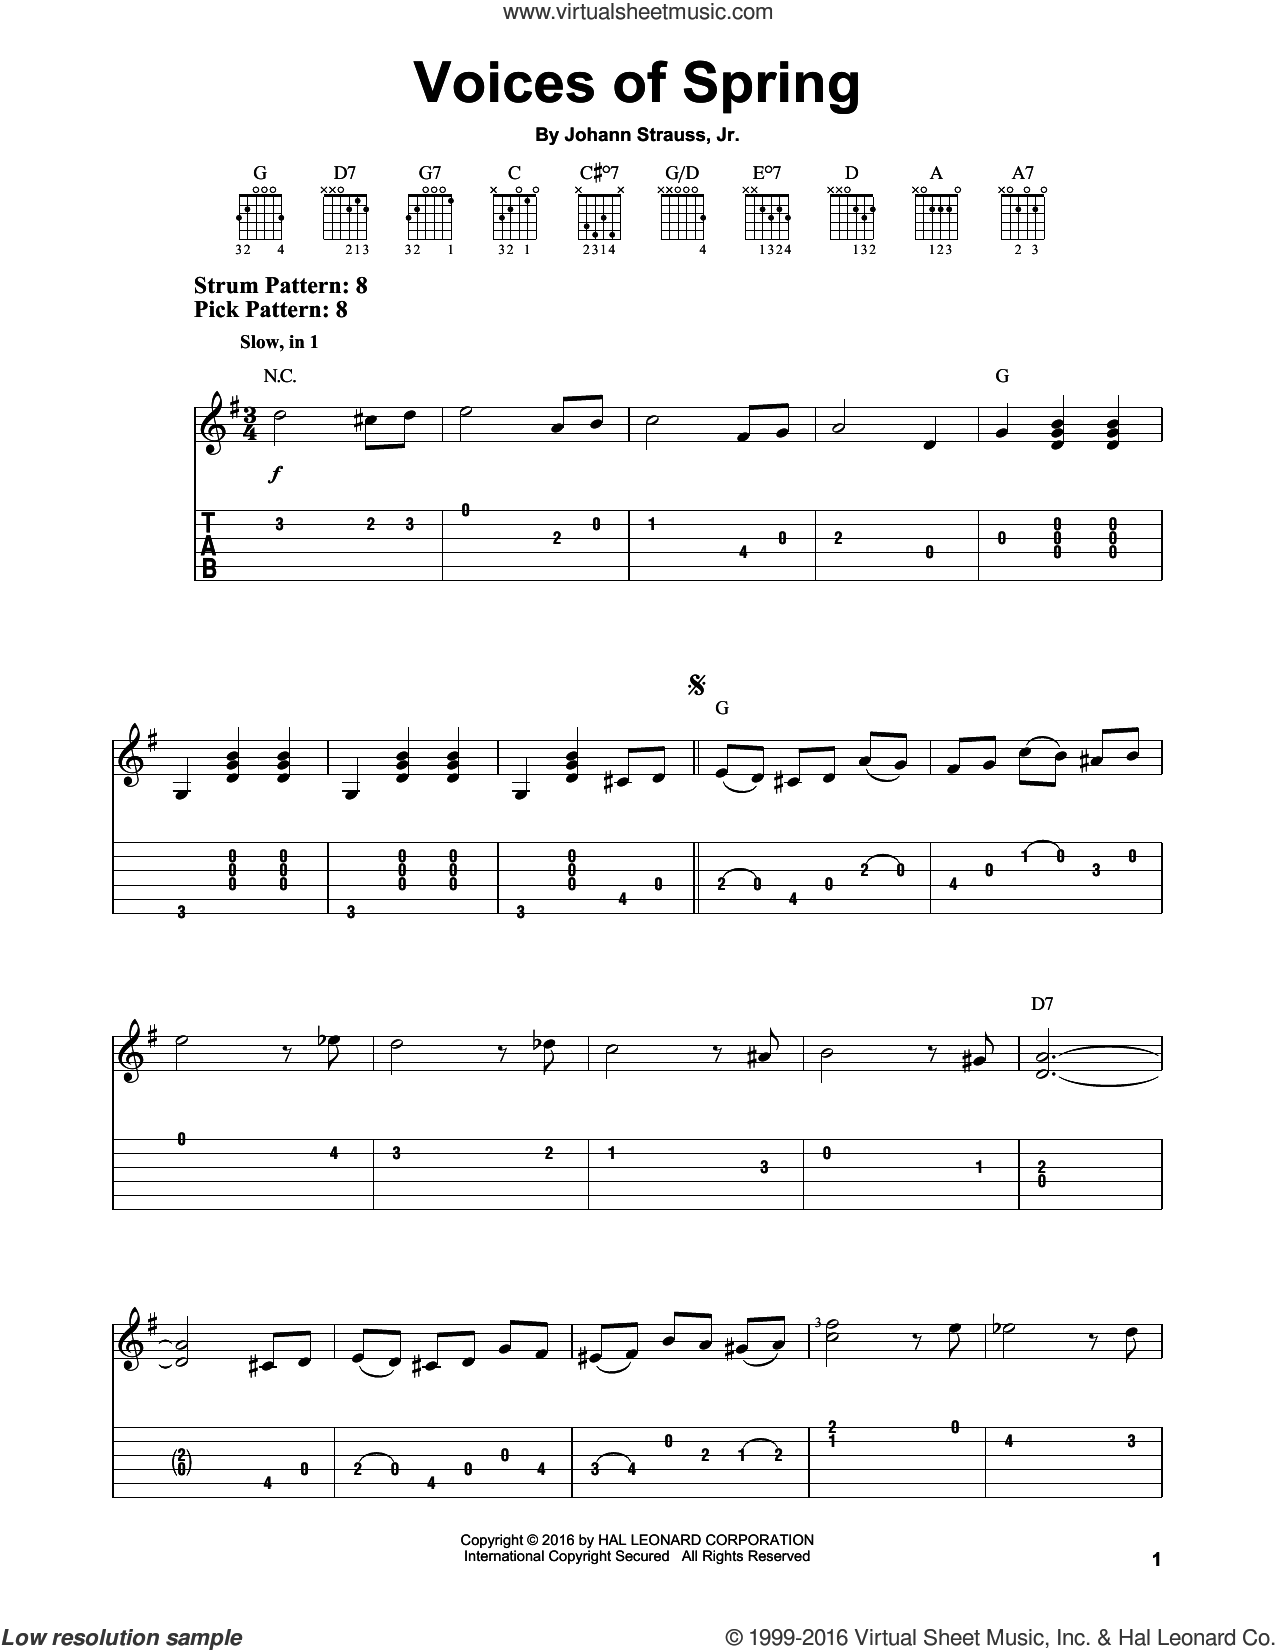 Voices Of Spring sheet music for guitar solo (easy tablature) by Johann Strauss, Jr., classical score, easy guitar (easy tablature)